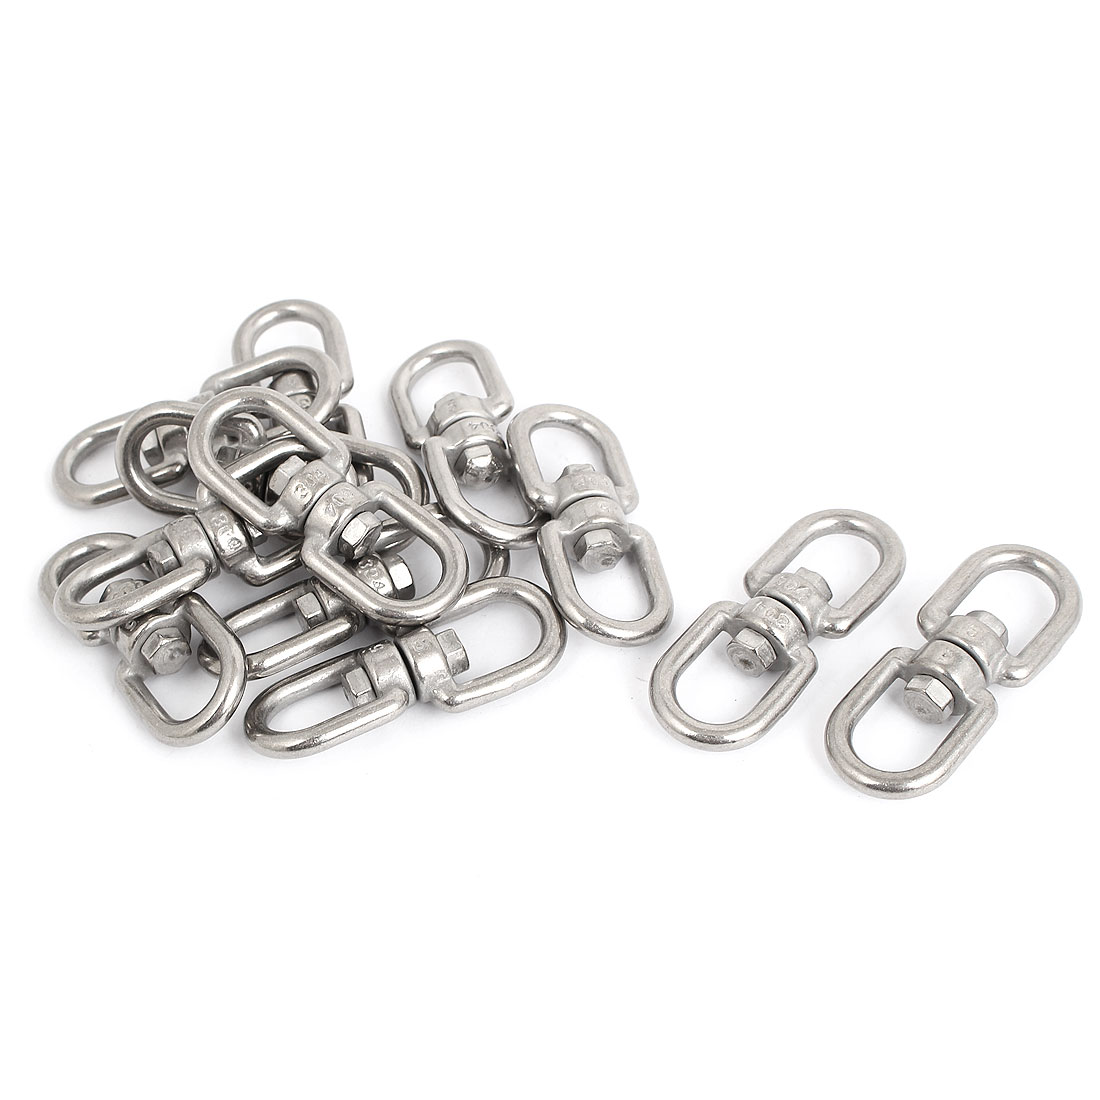 5mm Thickness 304 Stainless Steel Double End Eye Swivel Hook Shackle 12 Pcs